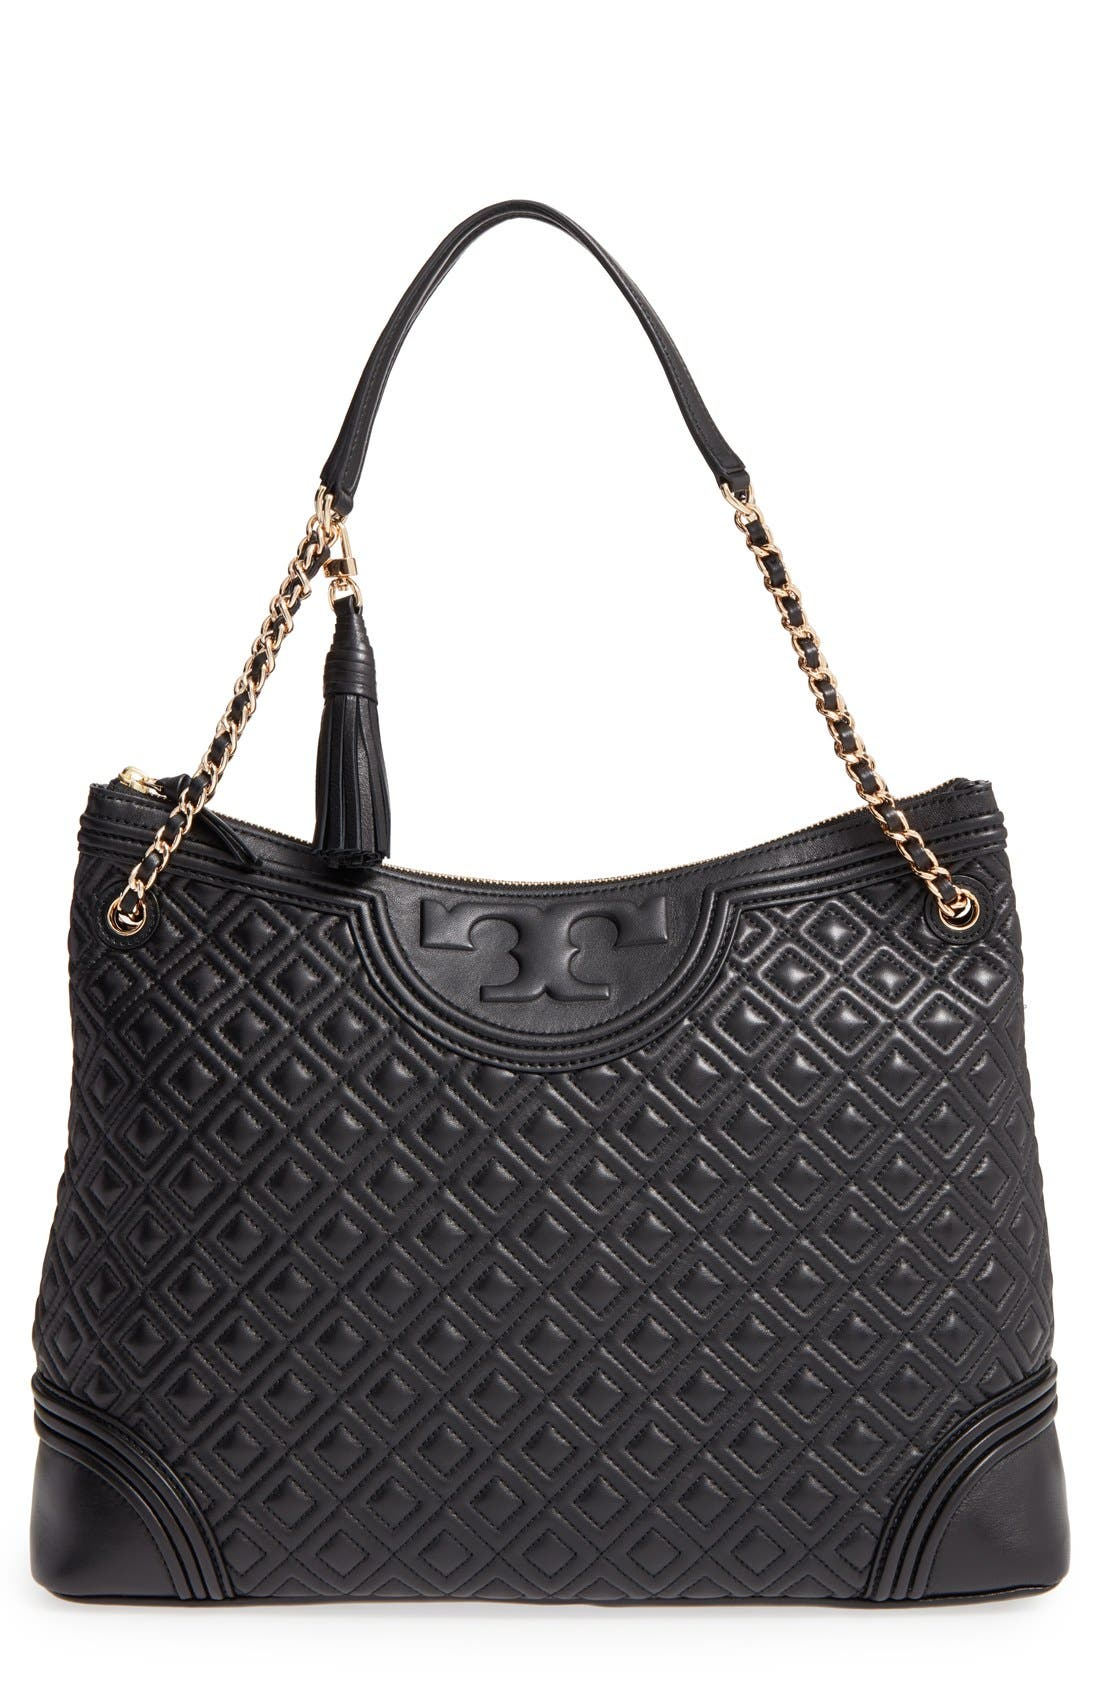 Main Image - Tory Burch 'Fleming' Leather Shoulder Bag